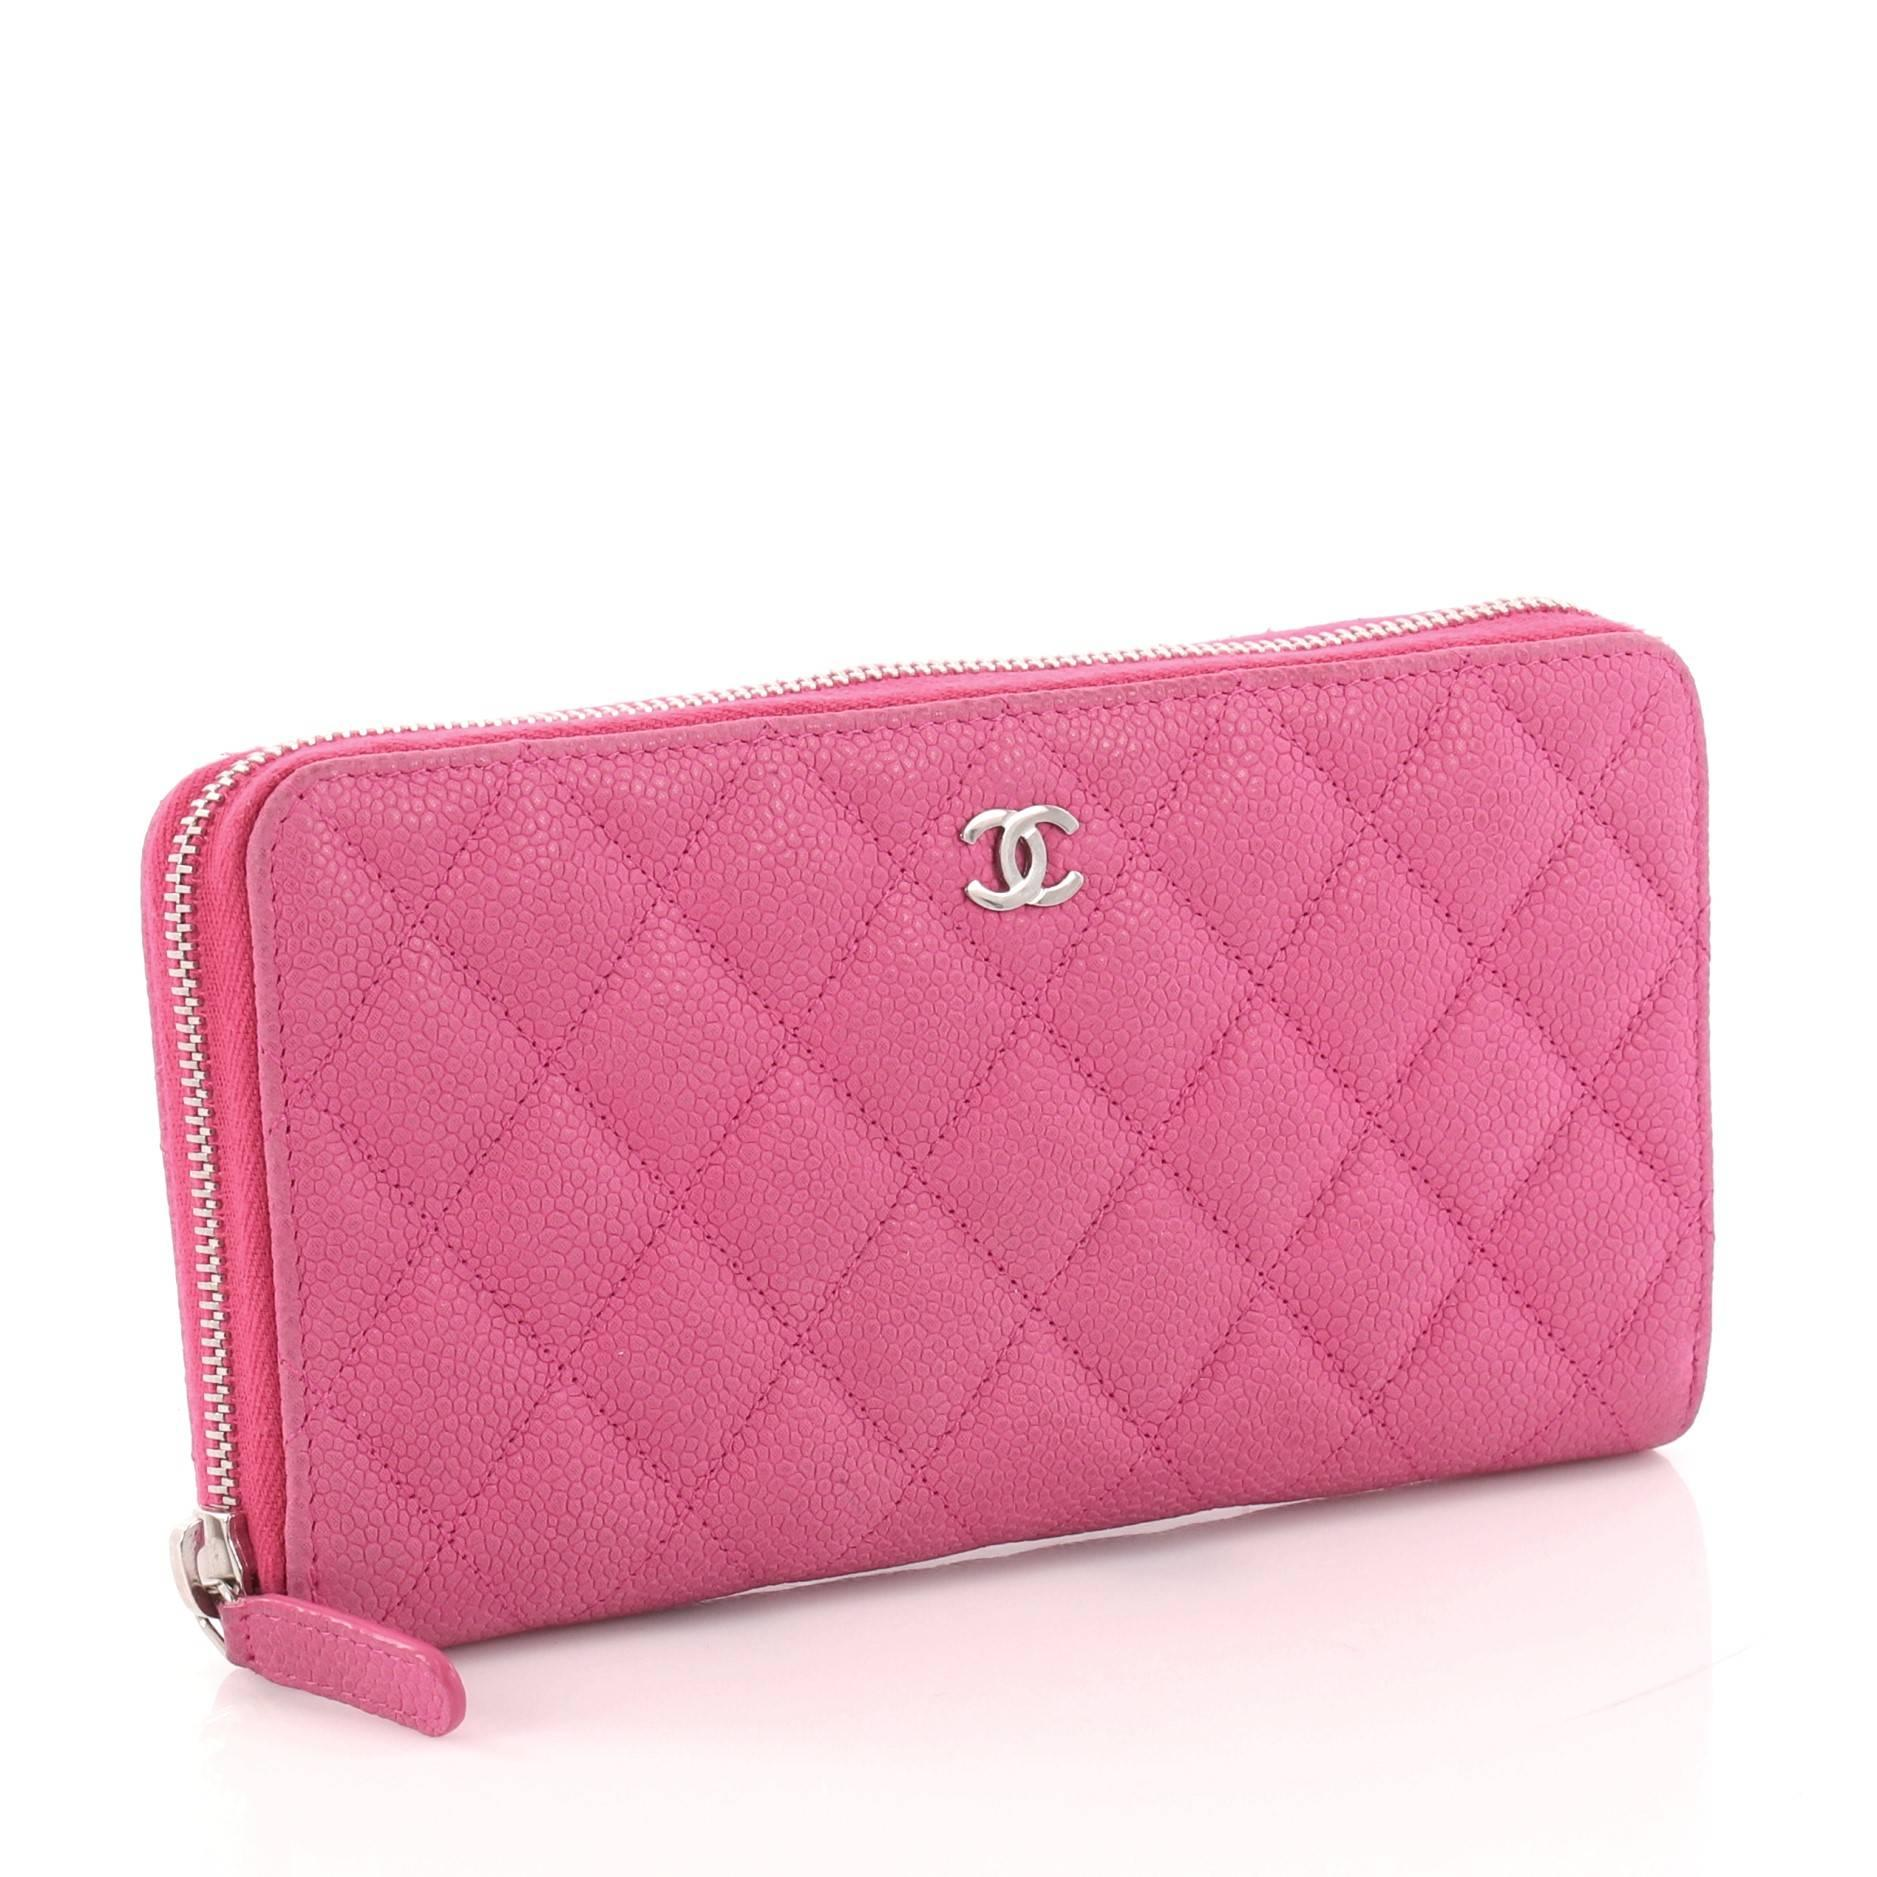 5f46b53f39a756 Chanel Zip Around Wallet Quilted Caviar Long at 1stdibs